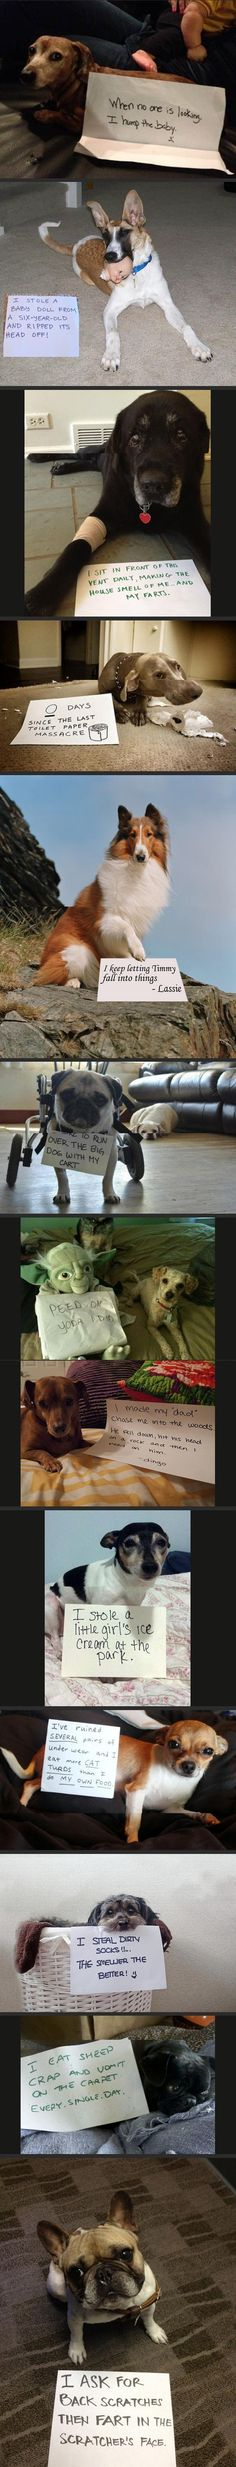 Dog Shaming the link has hilarious images too!